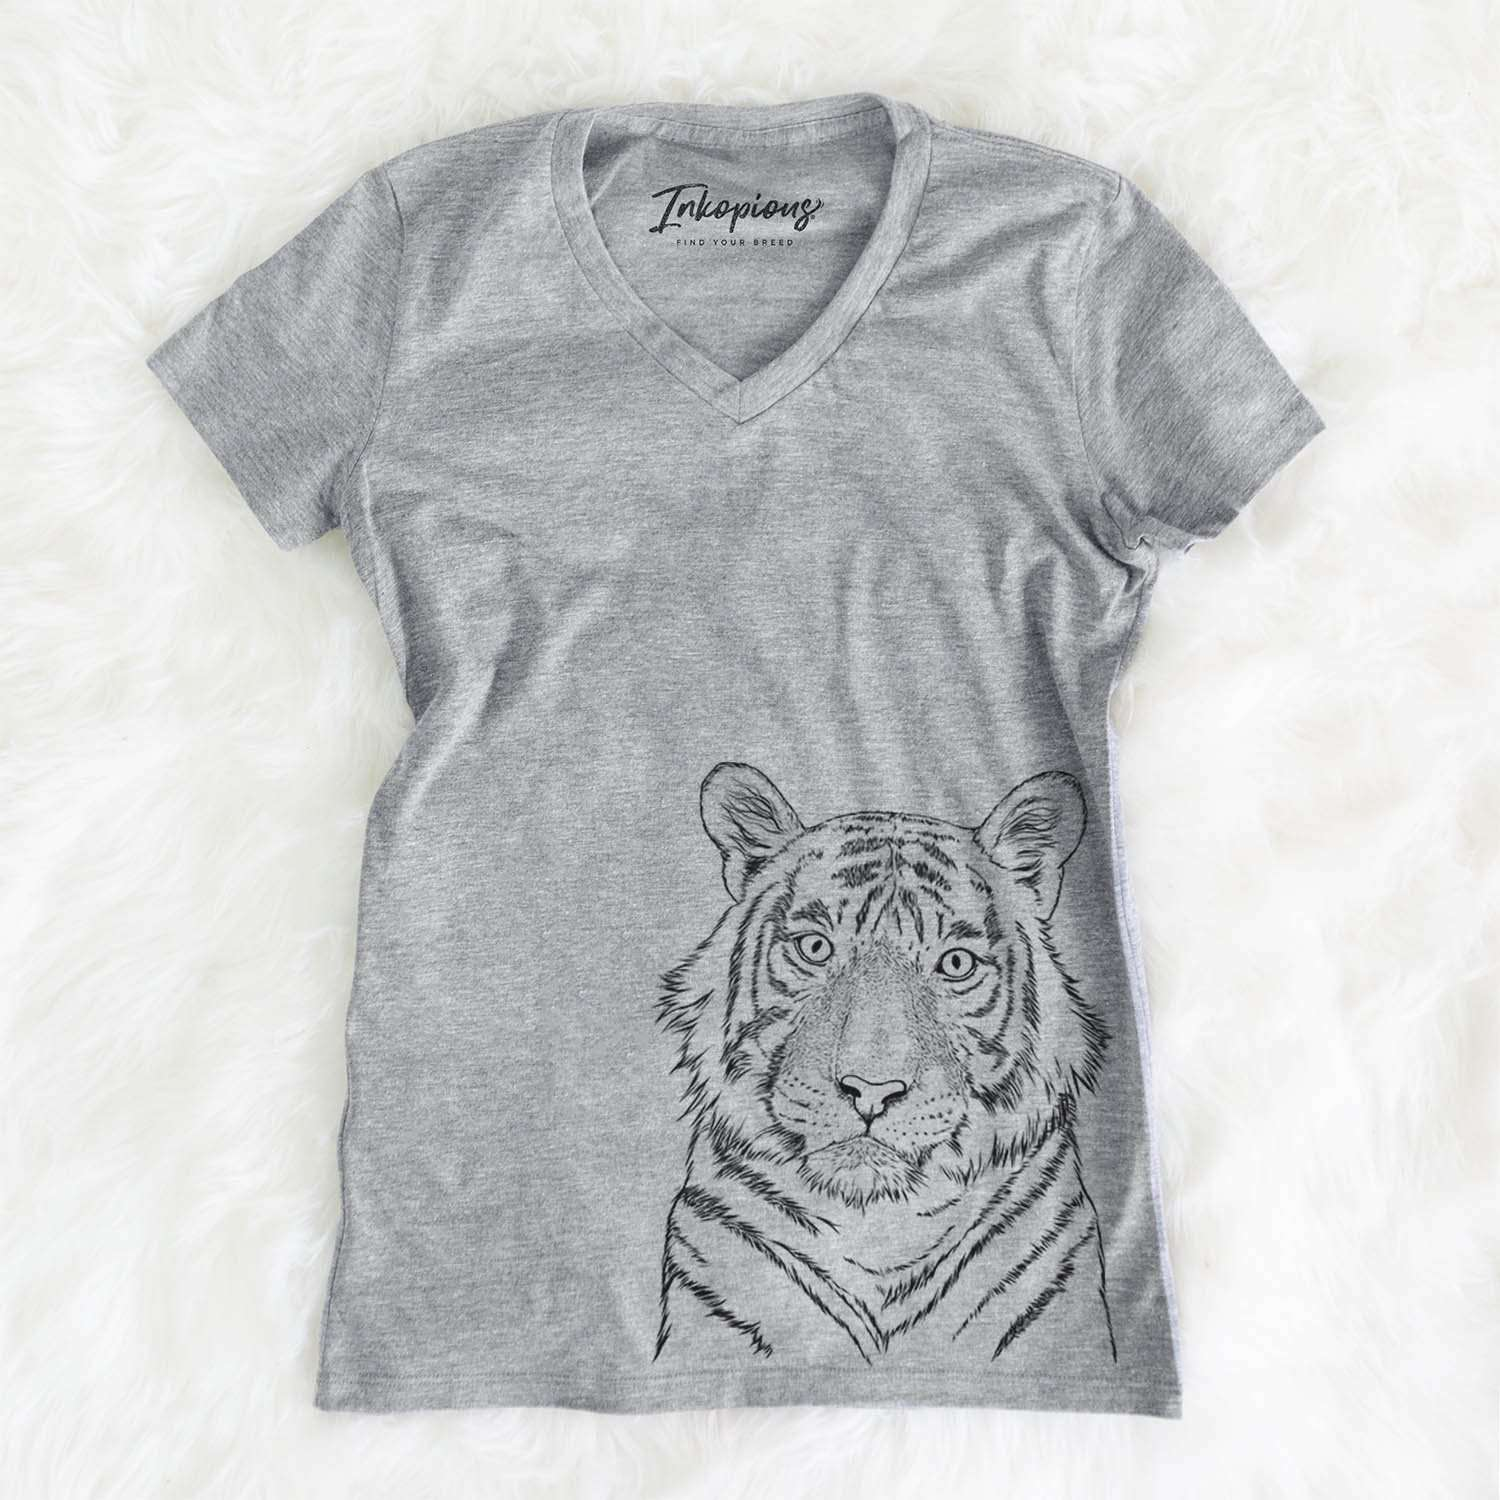 Wayne the Bengal Tiger - Women's Modern Fit V-neck Shirt